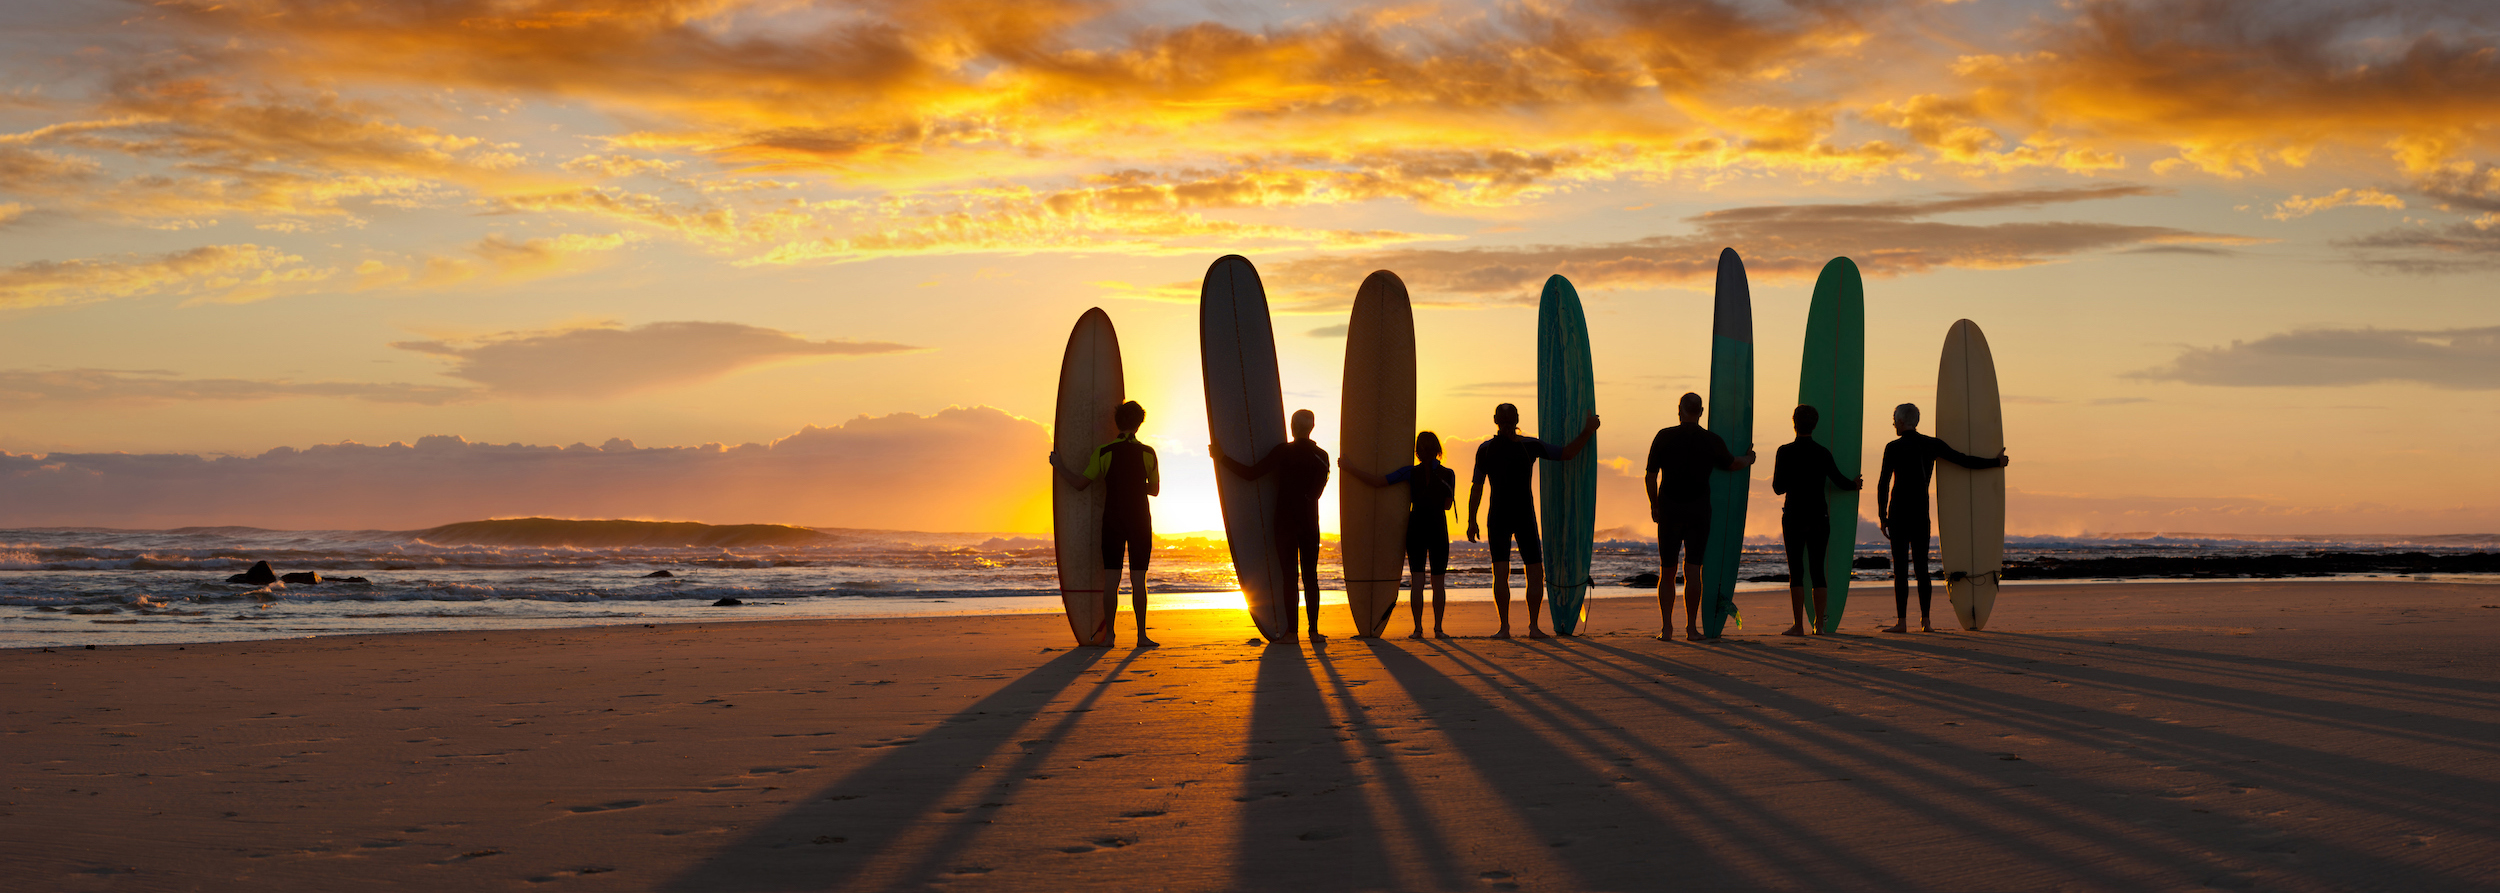 How to choose your surfboard racks